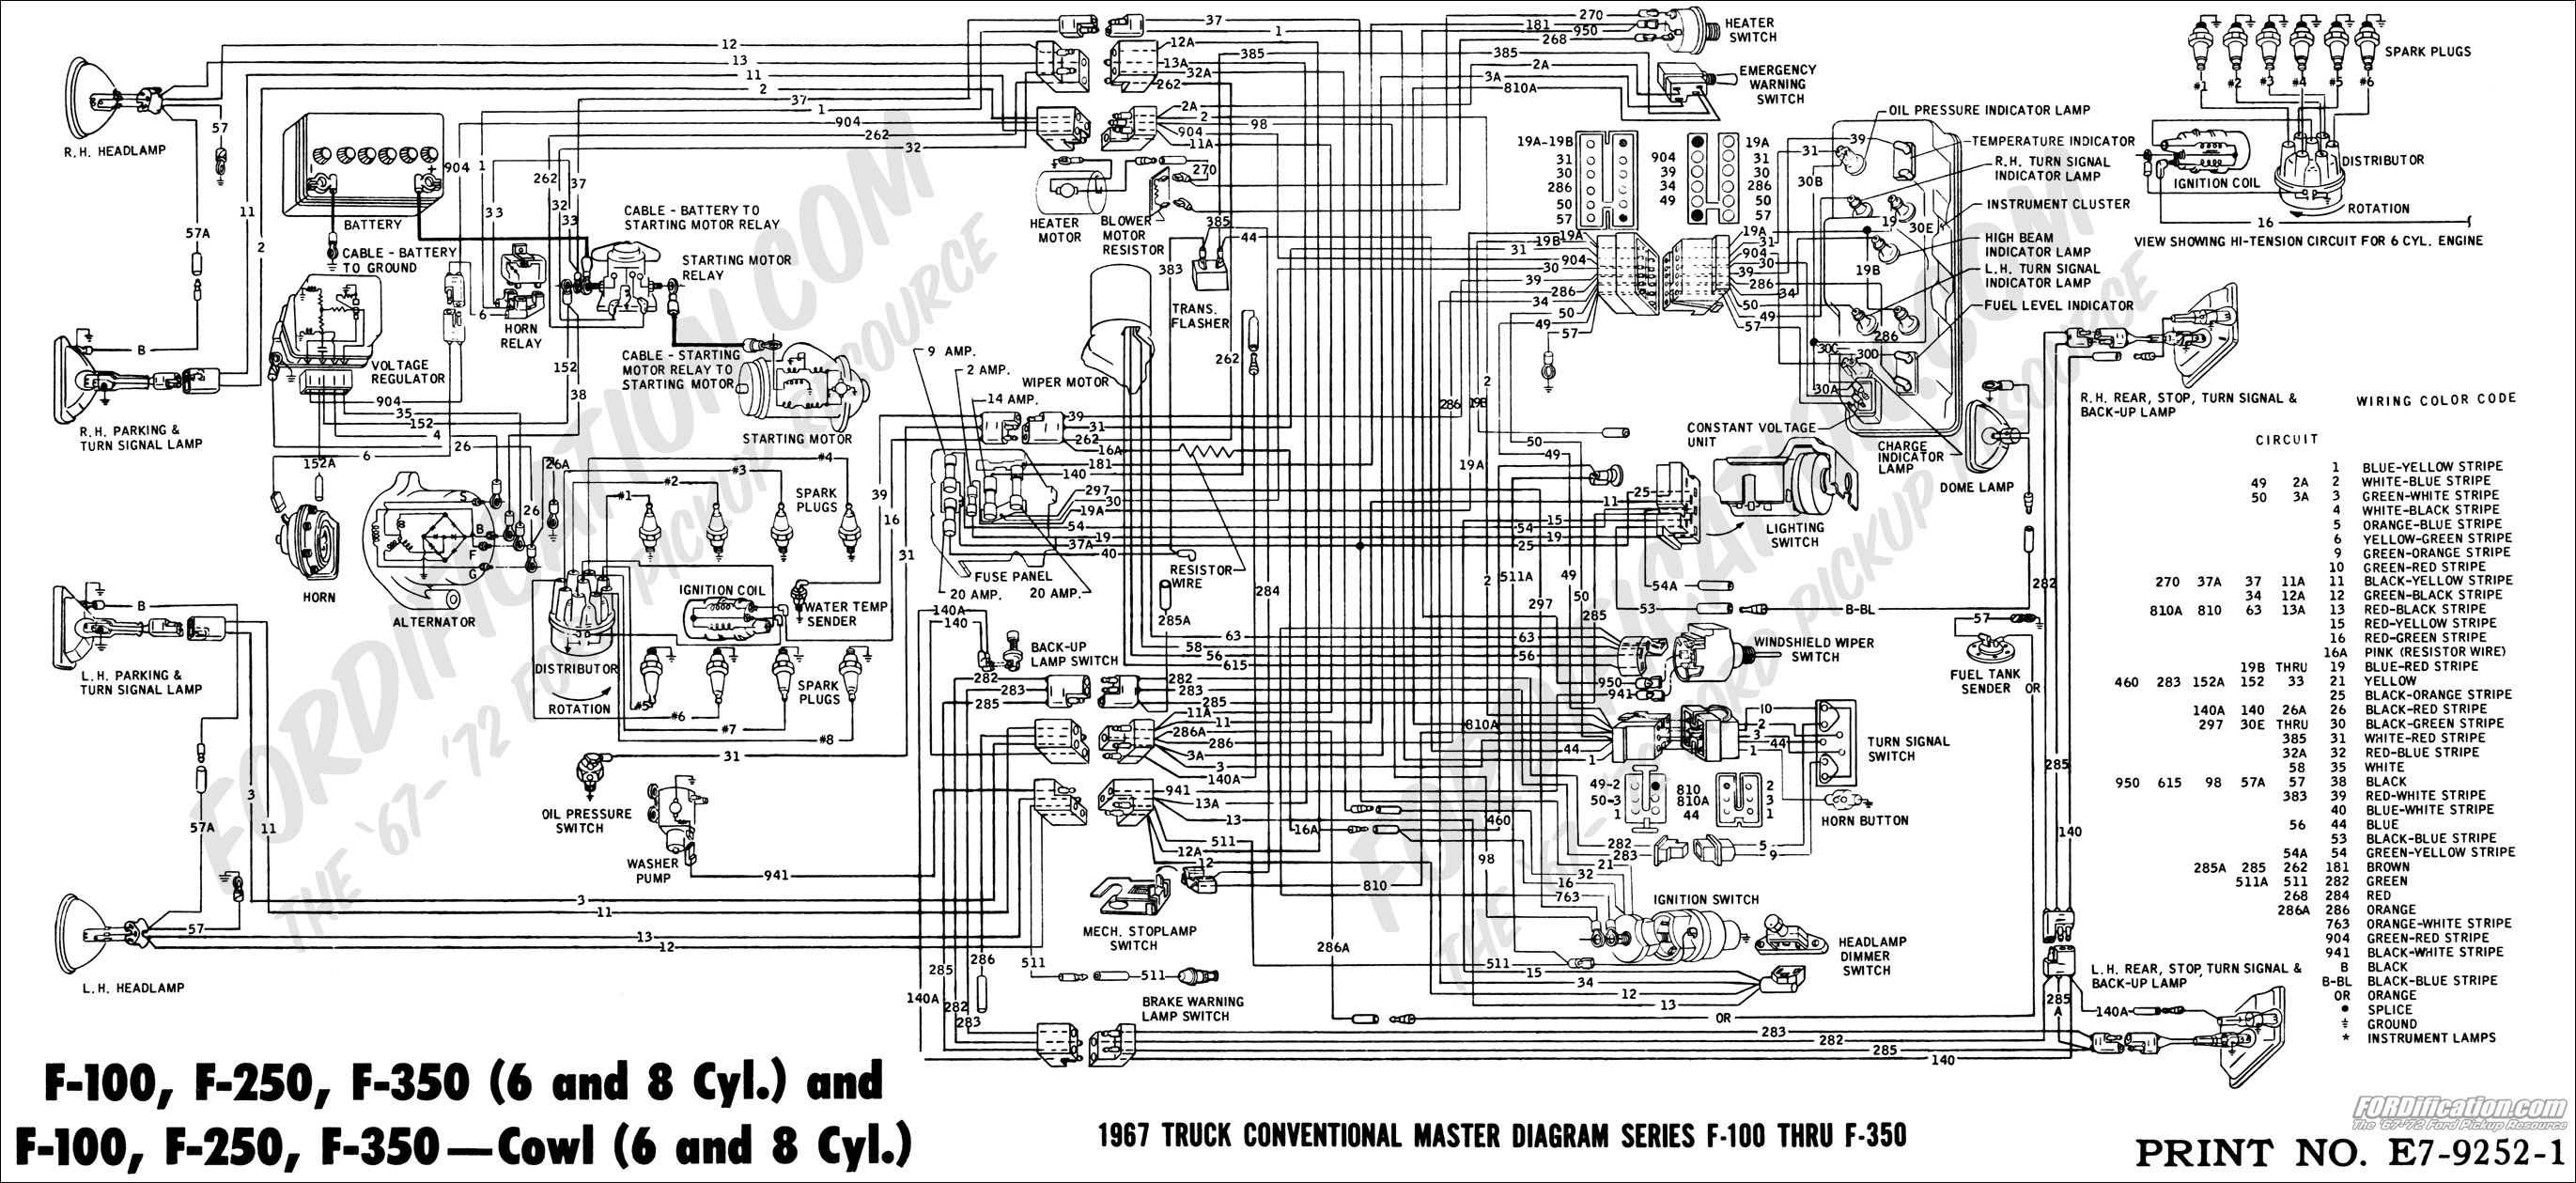 1998 F150 Wiring Diagram Everything About 97 Ford F 150 Stereo 4x4 Library Rh Muehlwald De Radio